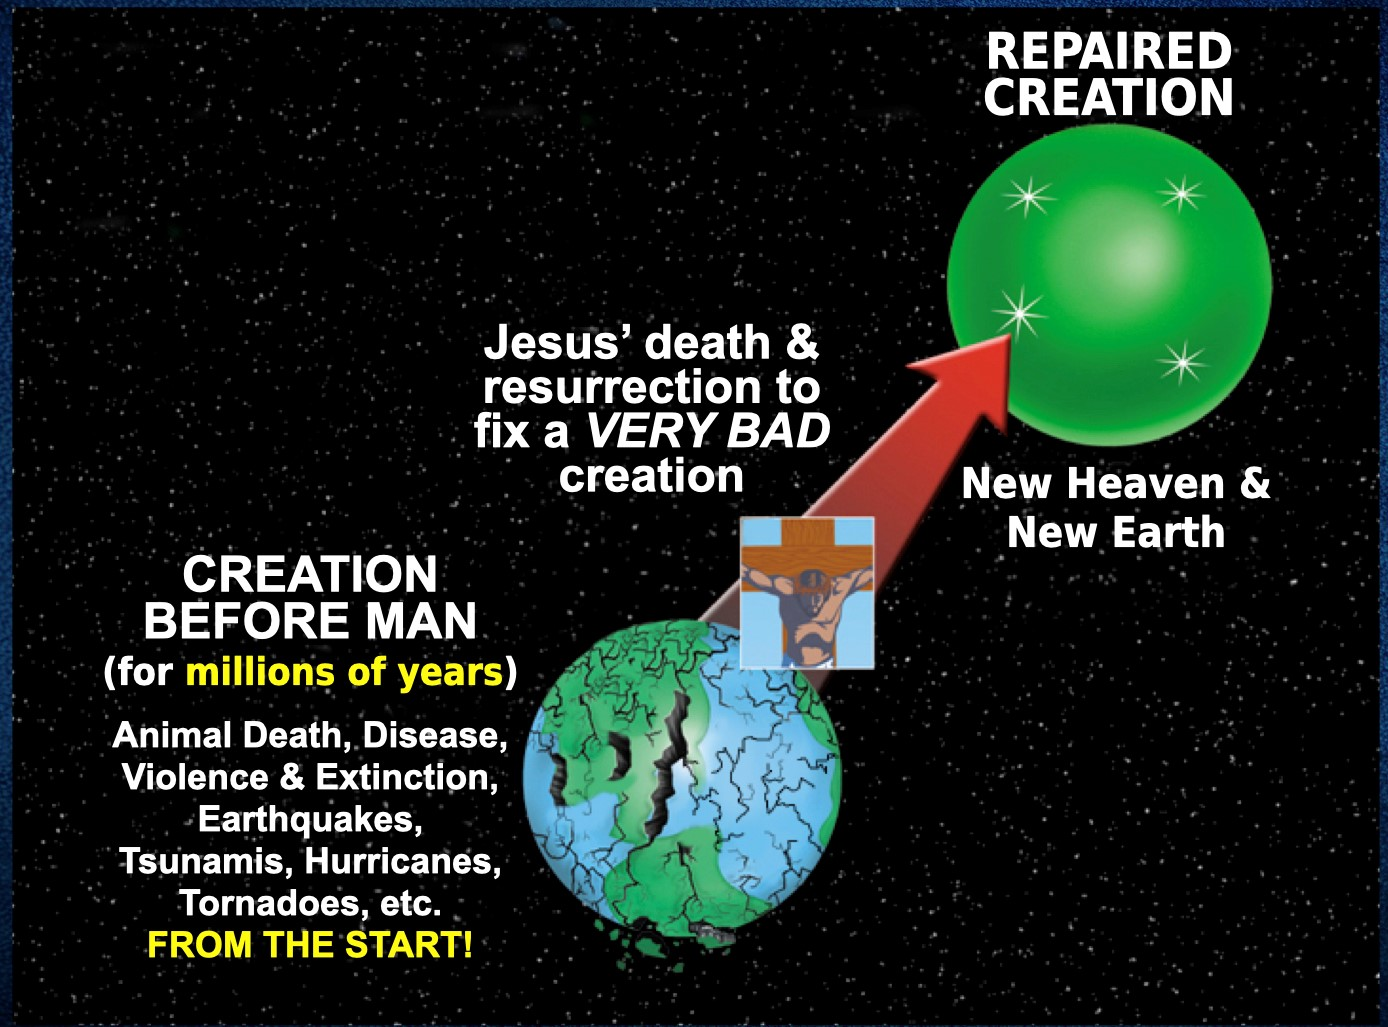 Antibiblical view of the earth's history